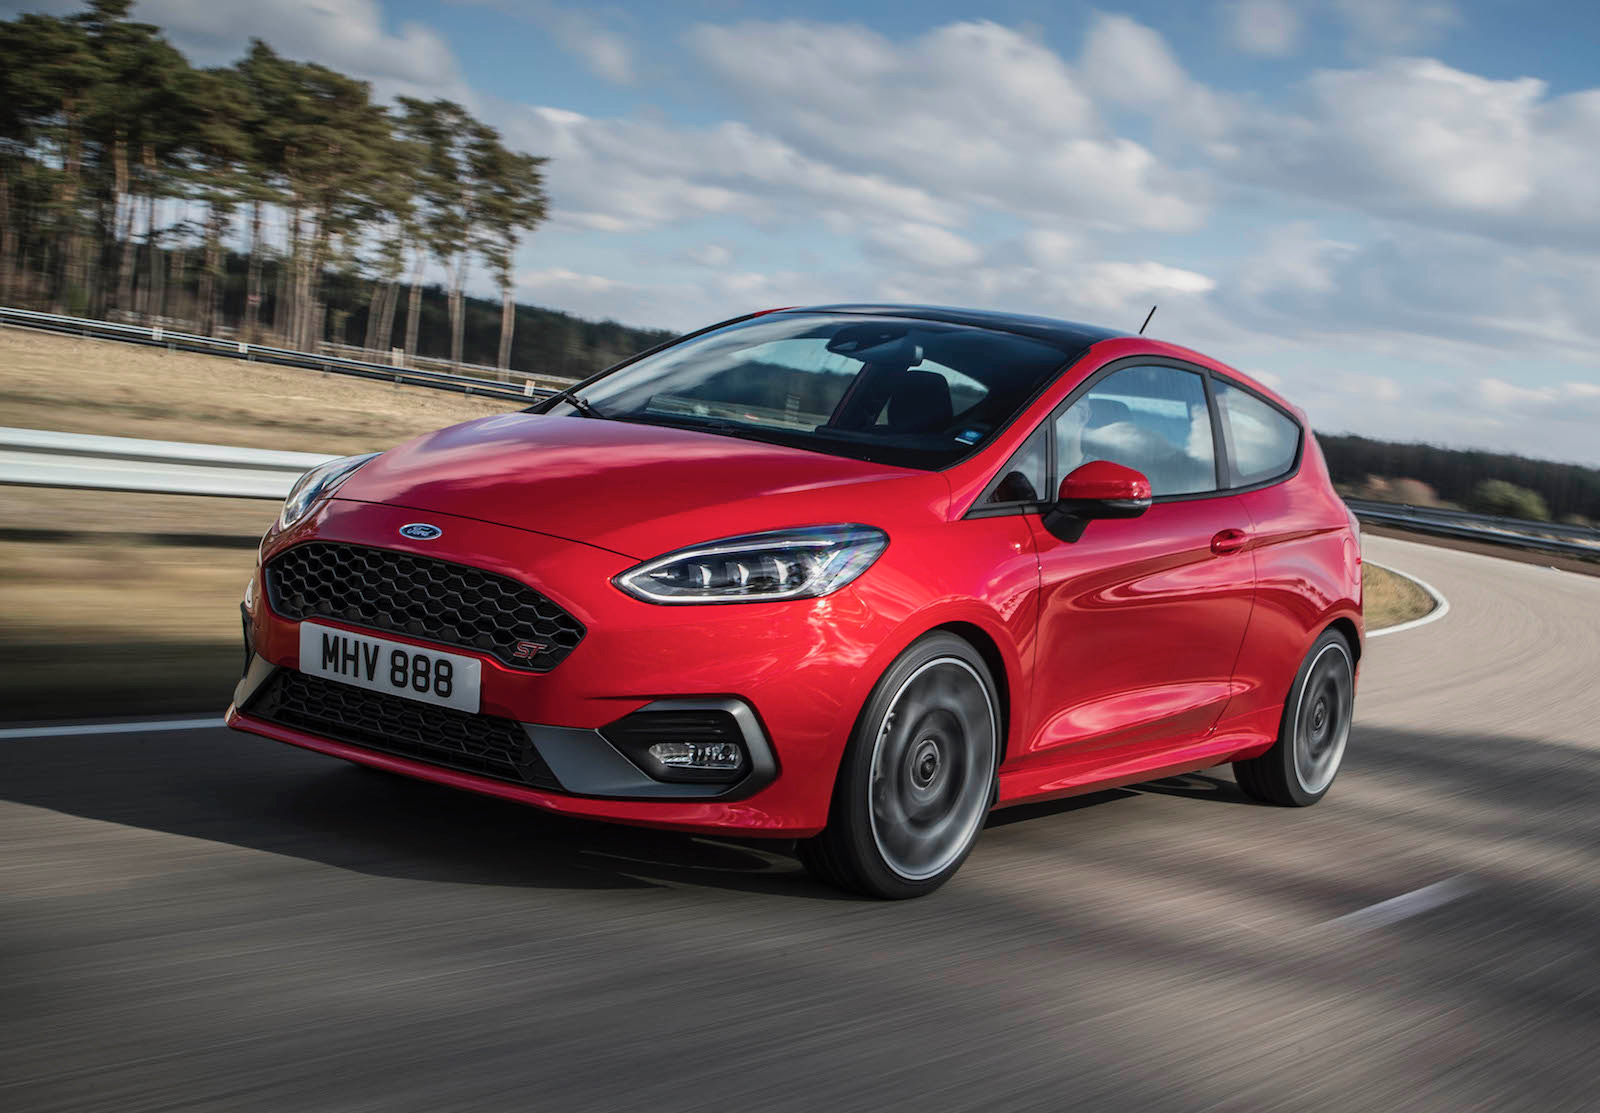 2018 ford fiesta st specs revealed quaife diff launch control active exhaust performancedrive. Black Bedroom Furniture Sets. Home Design Ideas